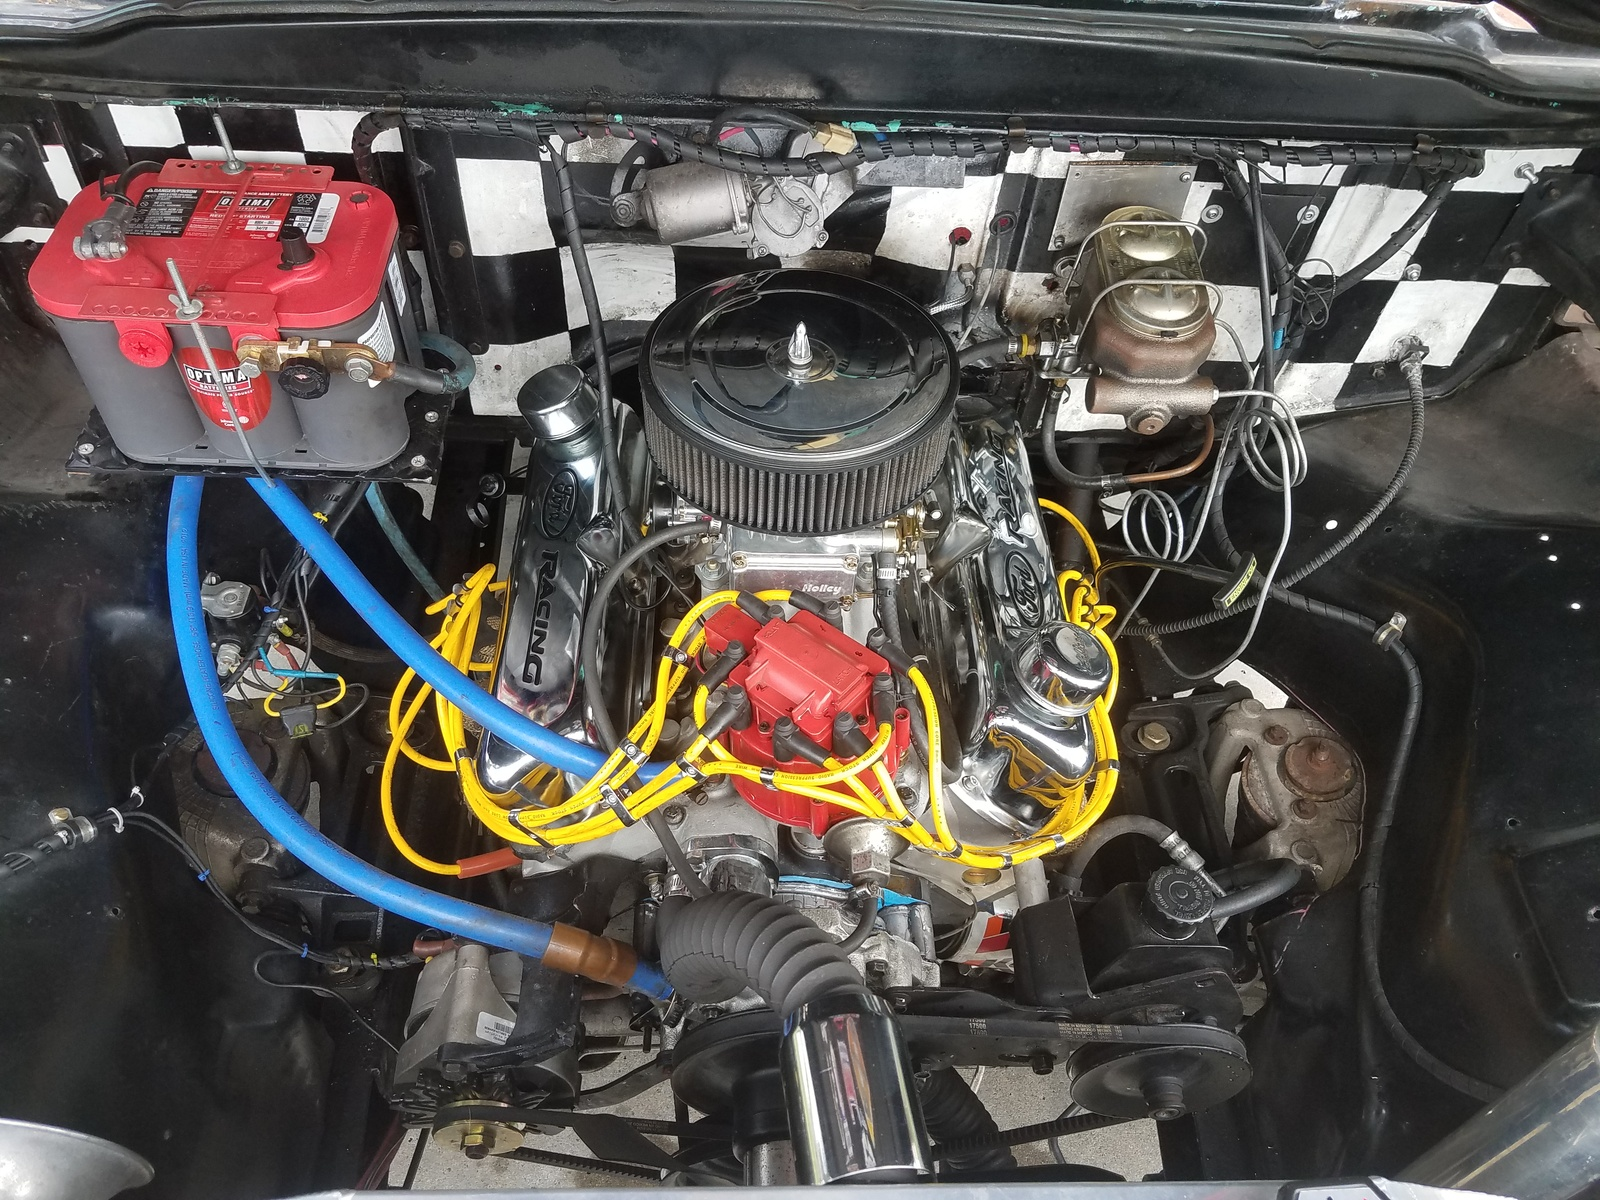 Ford F-100 Questions - Engine stalls when put into gear - CarGurus